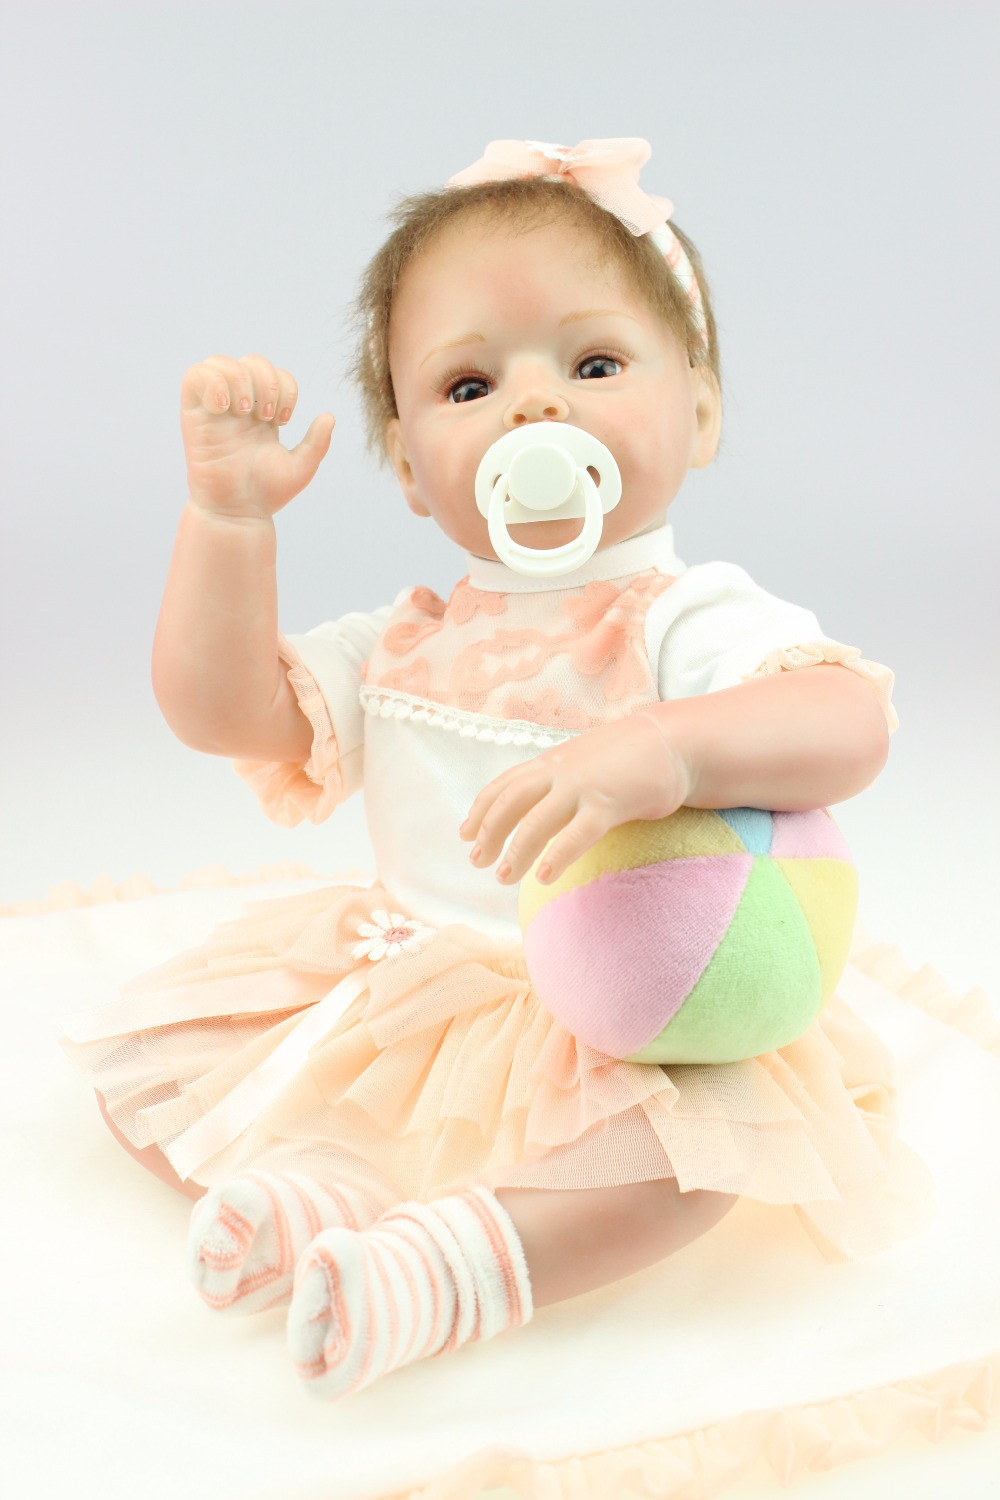 NEW hot sale lifelike neborn baby doll wholesale fashion doll real soft gentle touch stuffed dolls soft mohair hairNEW hot sale lifelike neborn baby doll wholesale fashion doll real soft gentle touch stuffed dolls soft mohair hair